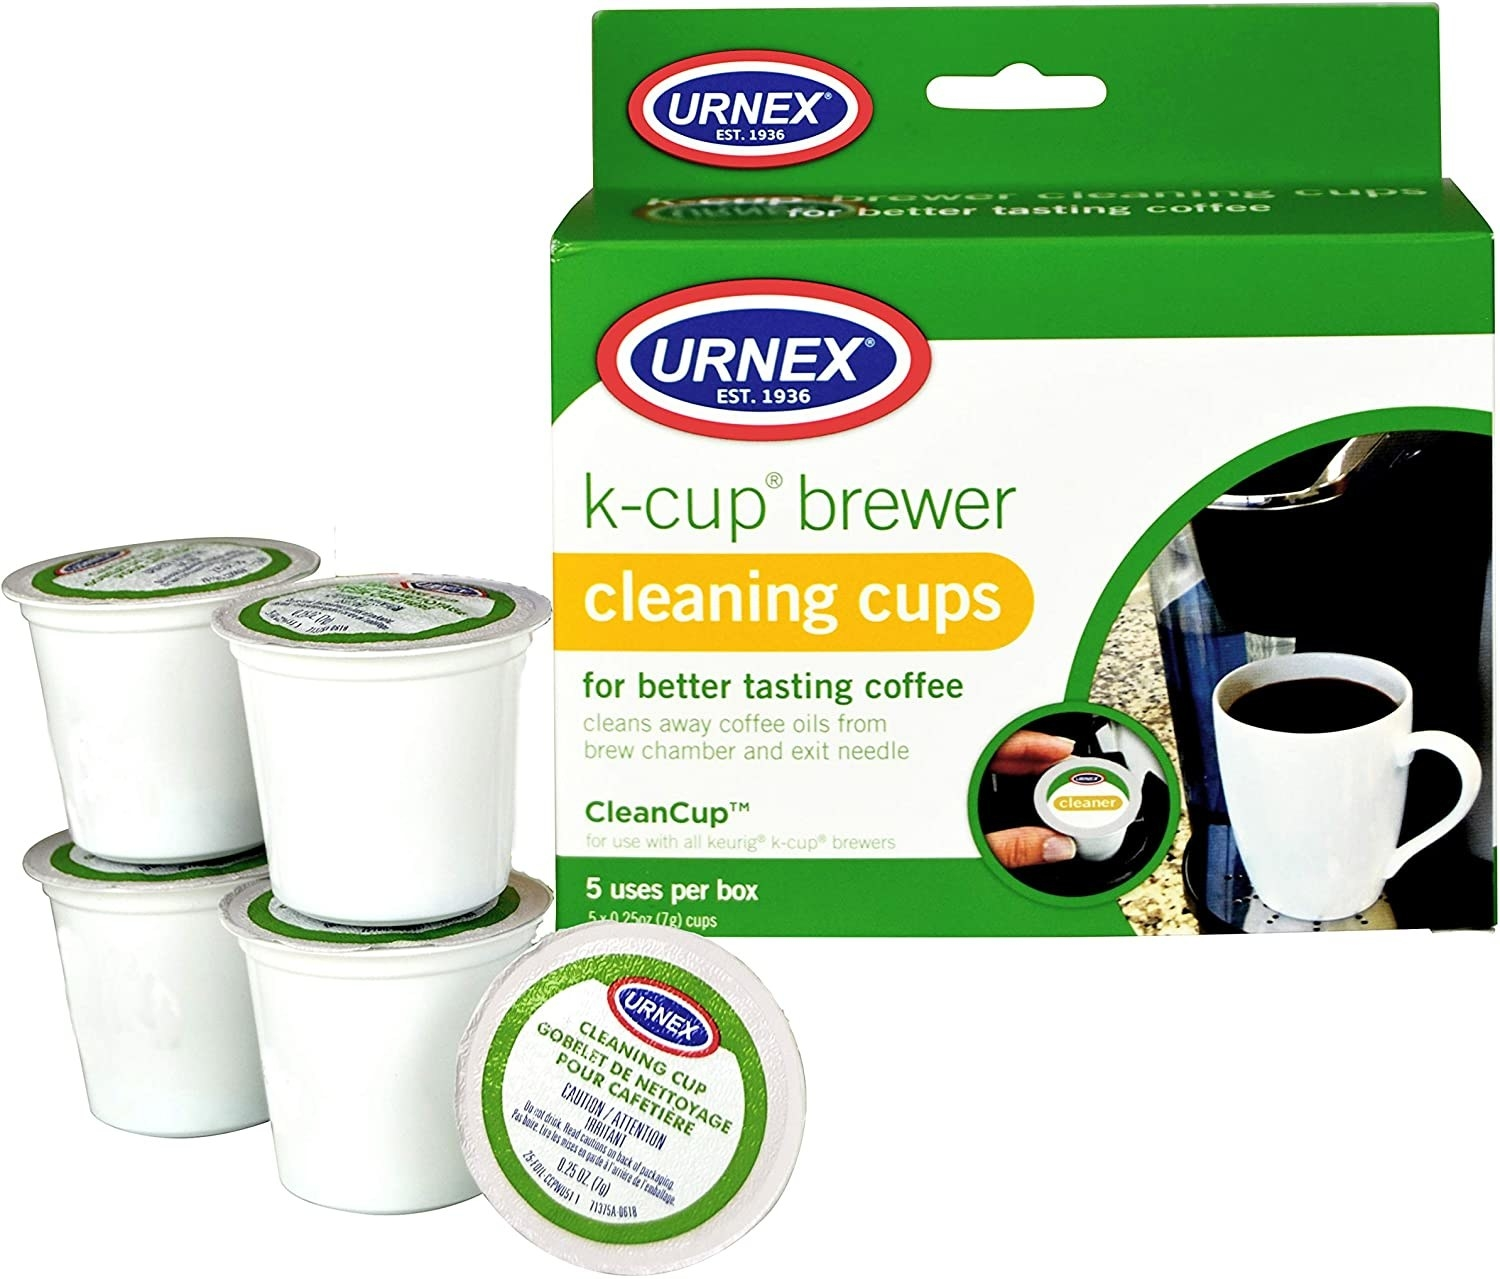 The product and its packaging. The cleaning cups are the same shape as regular K-Cups